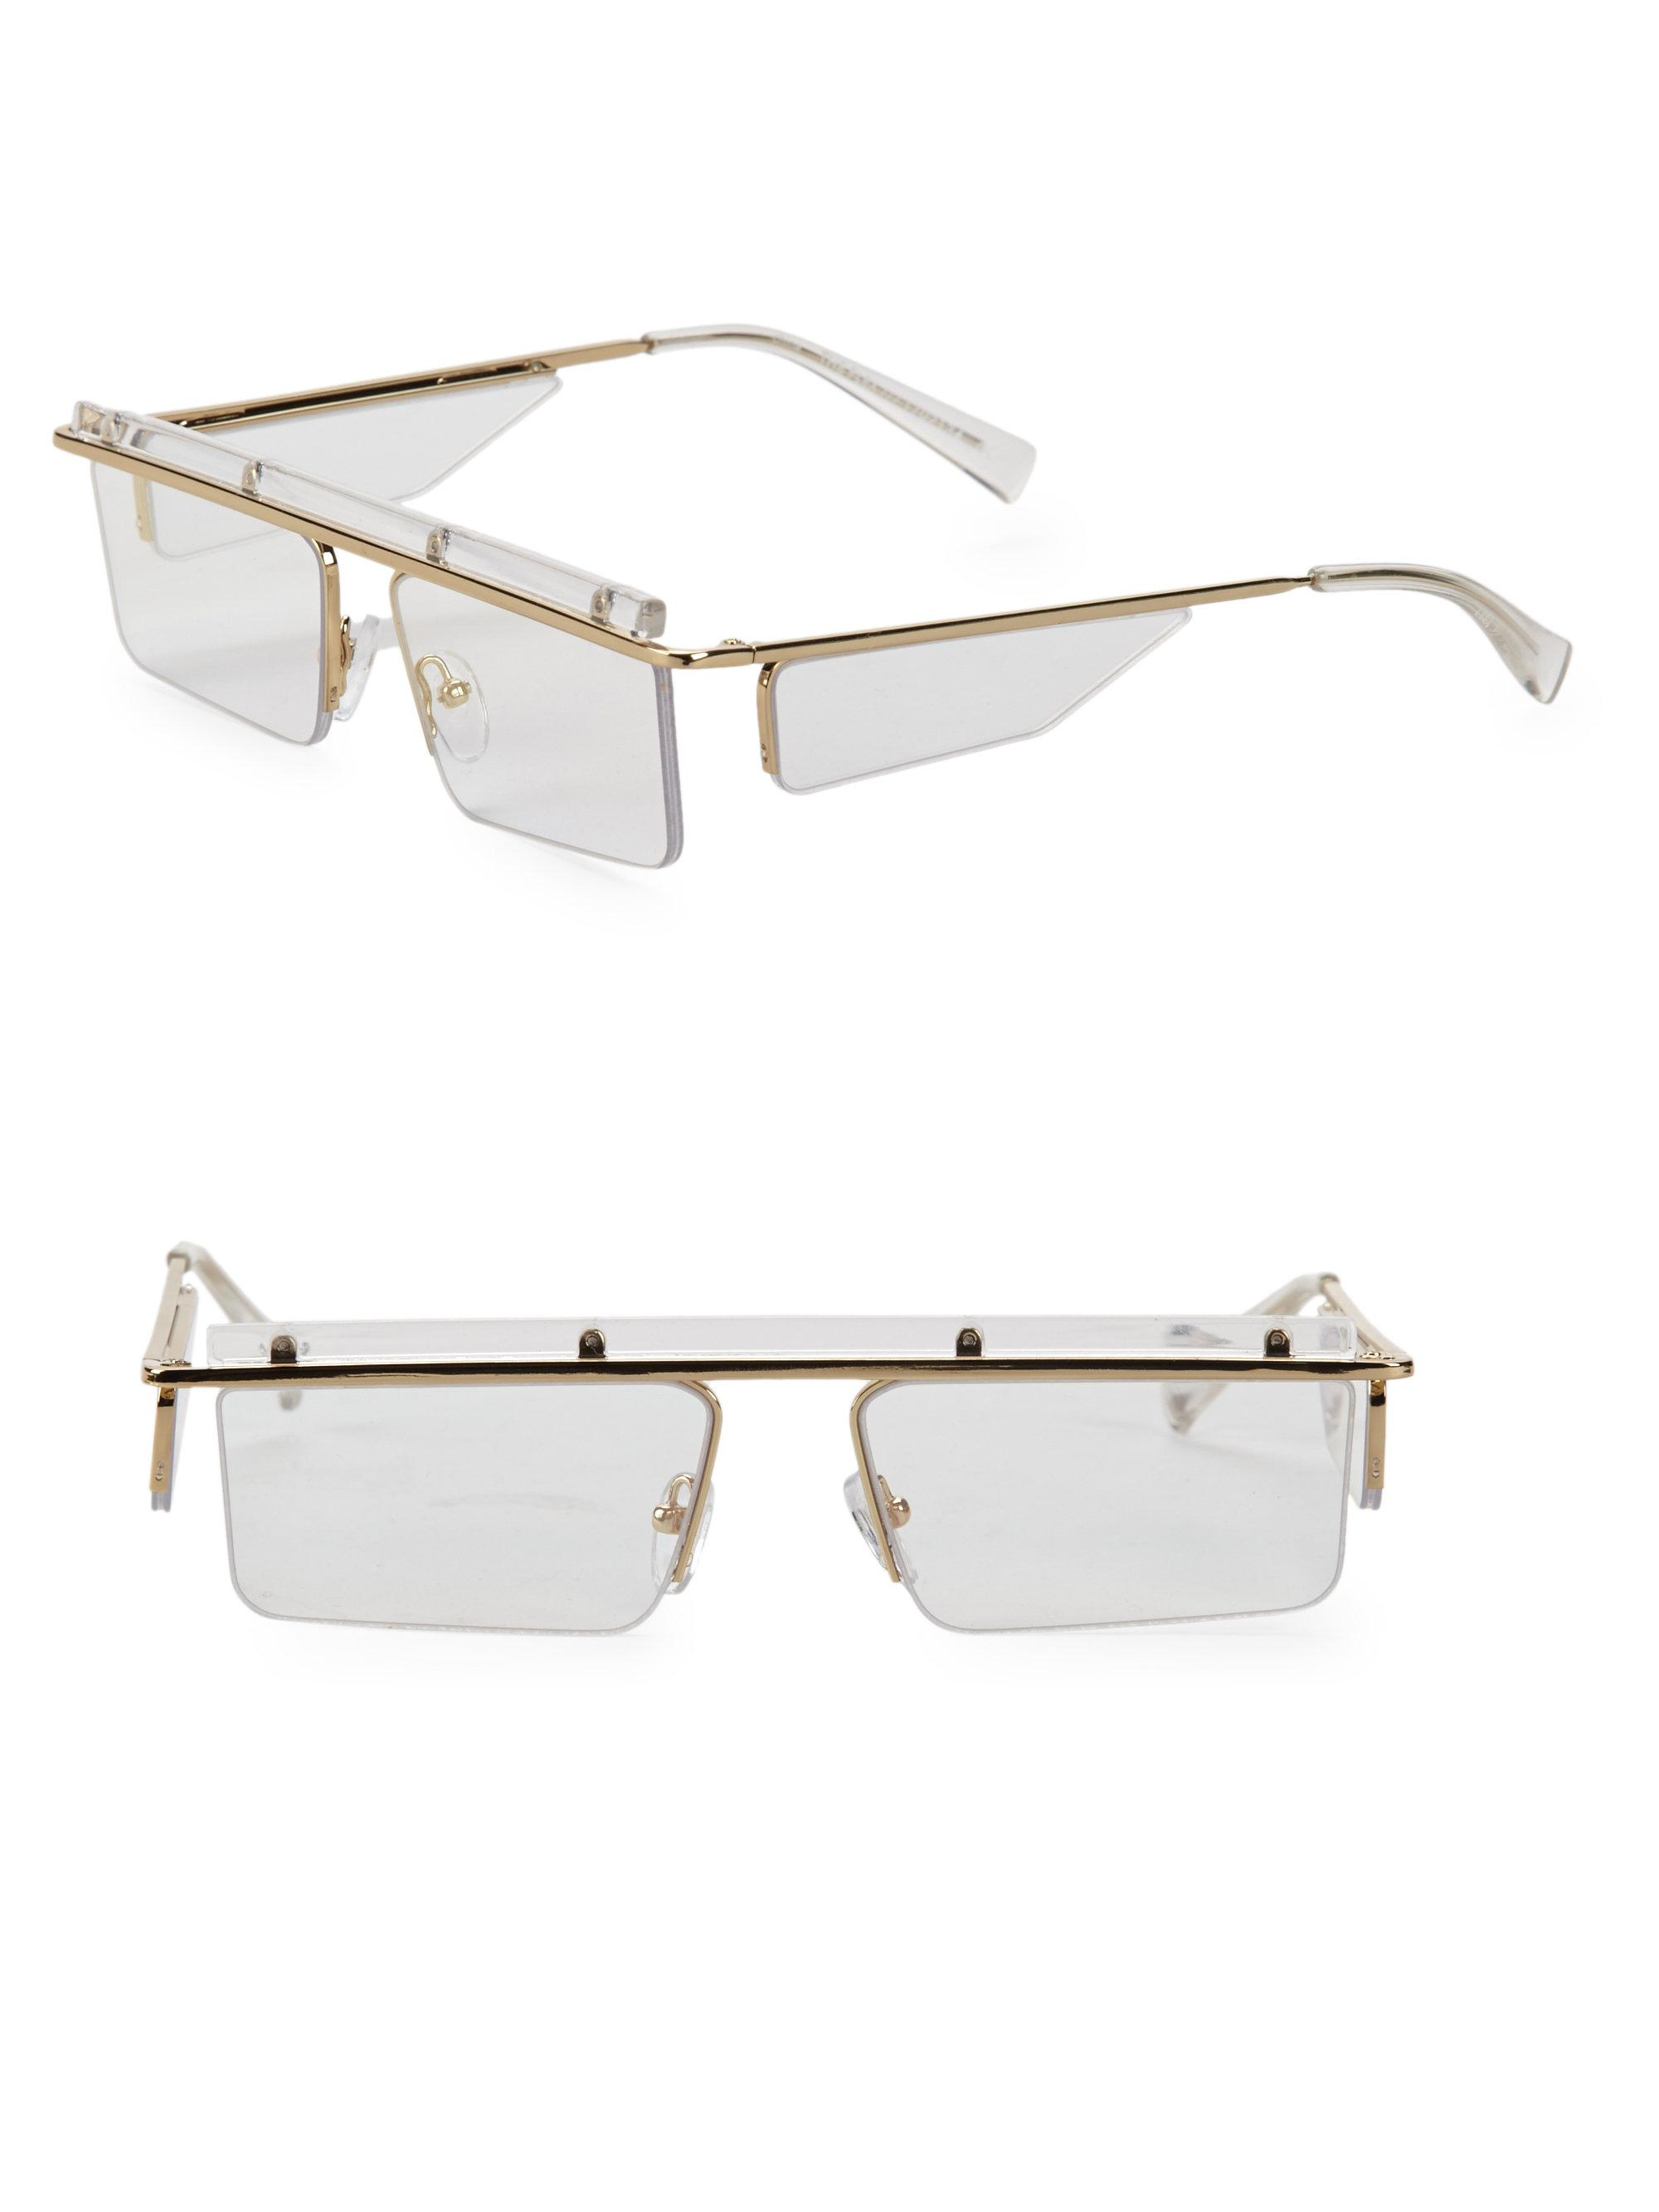 39451ebdb Le Specs The Flex Clear Semi-charmed Sunglasses in Metallic - Lyst